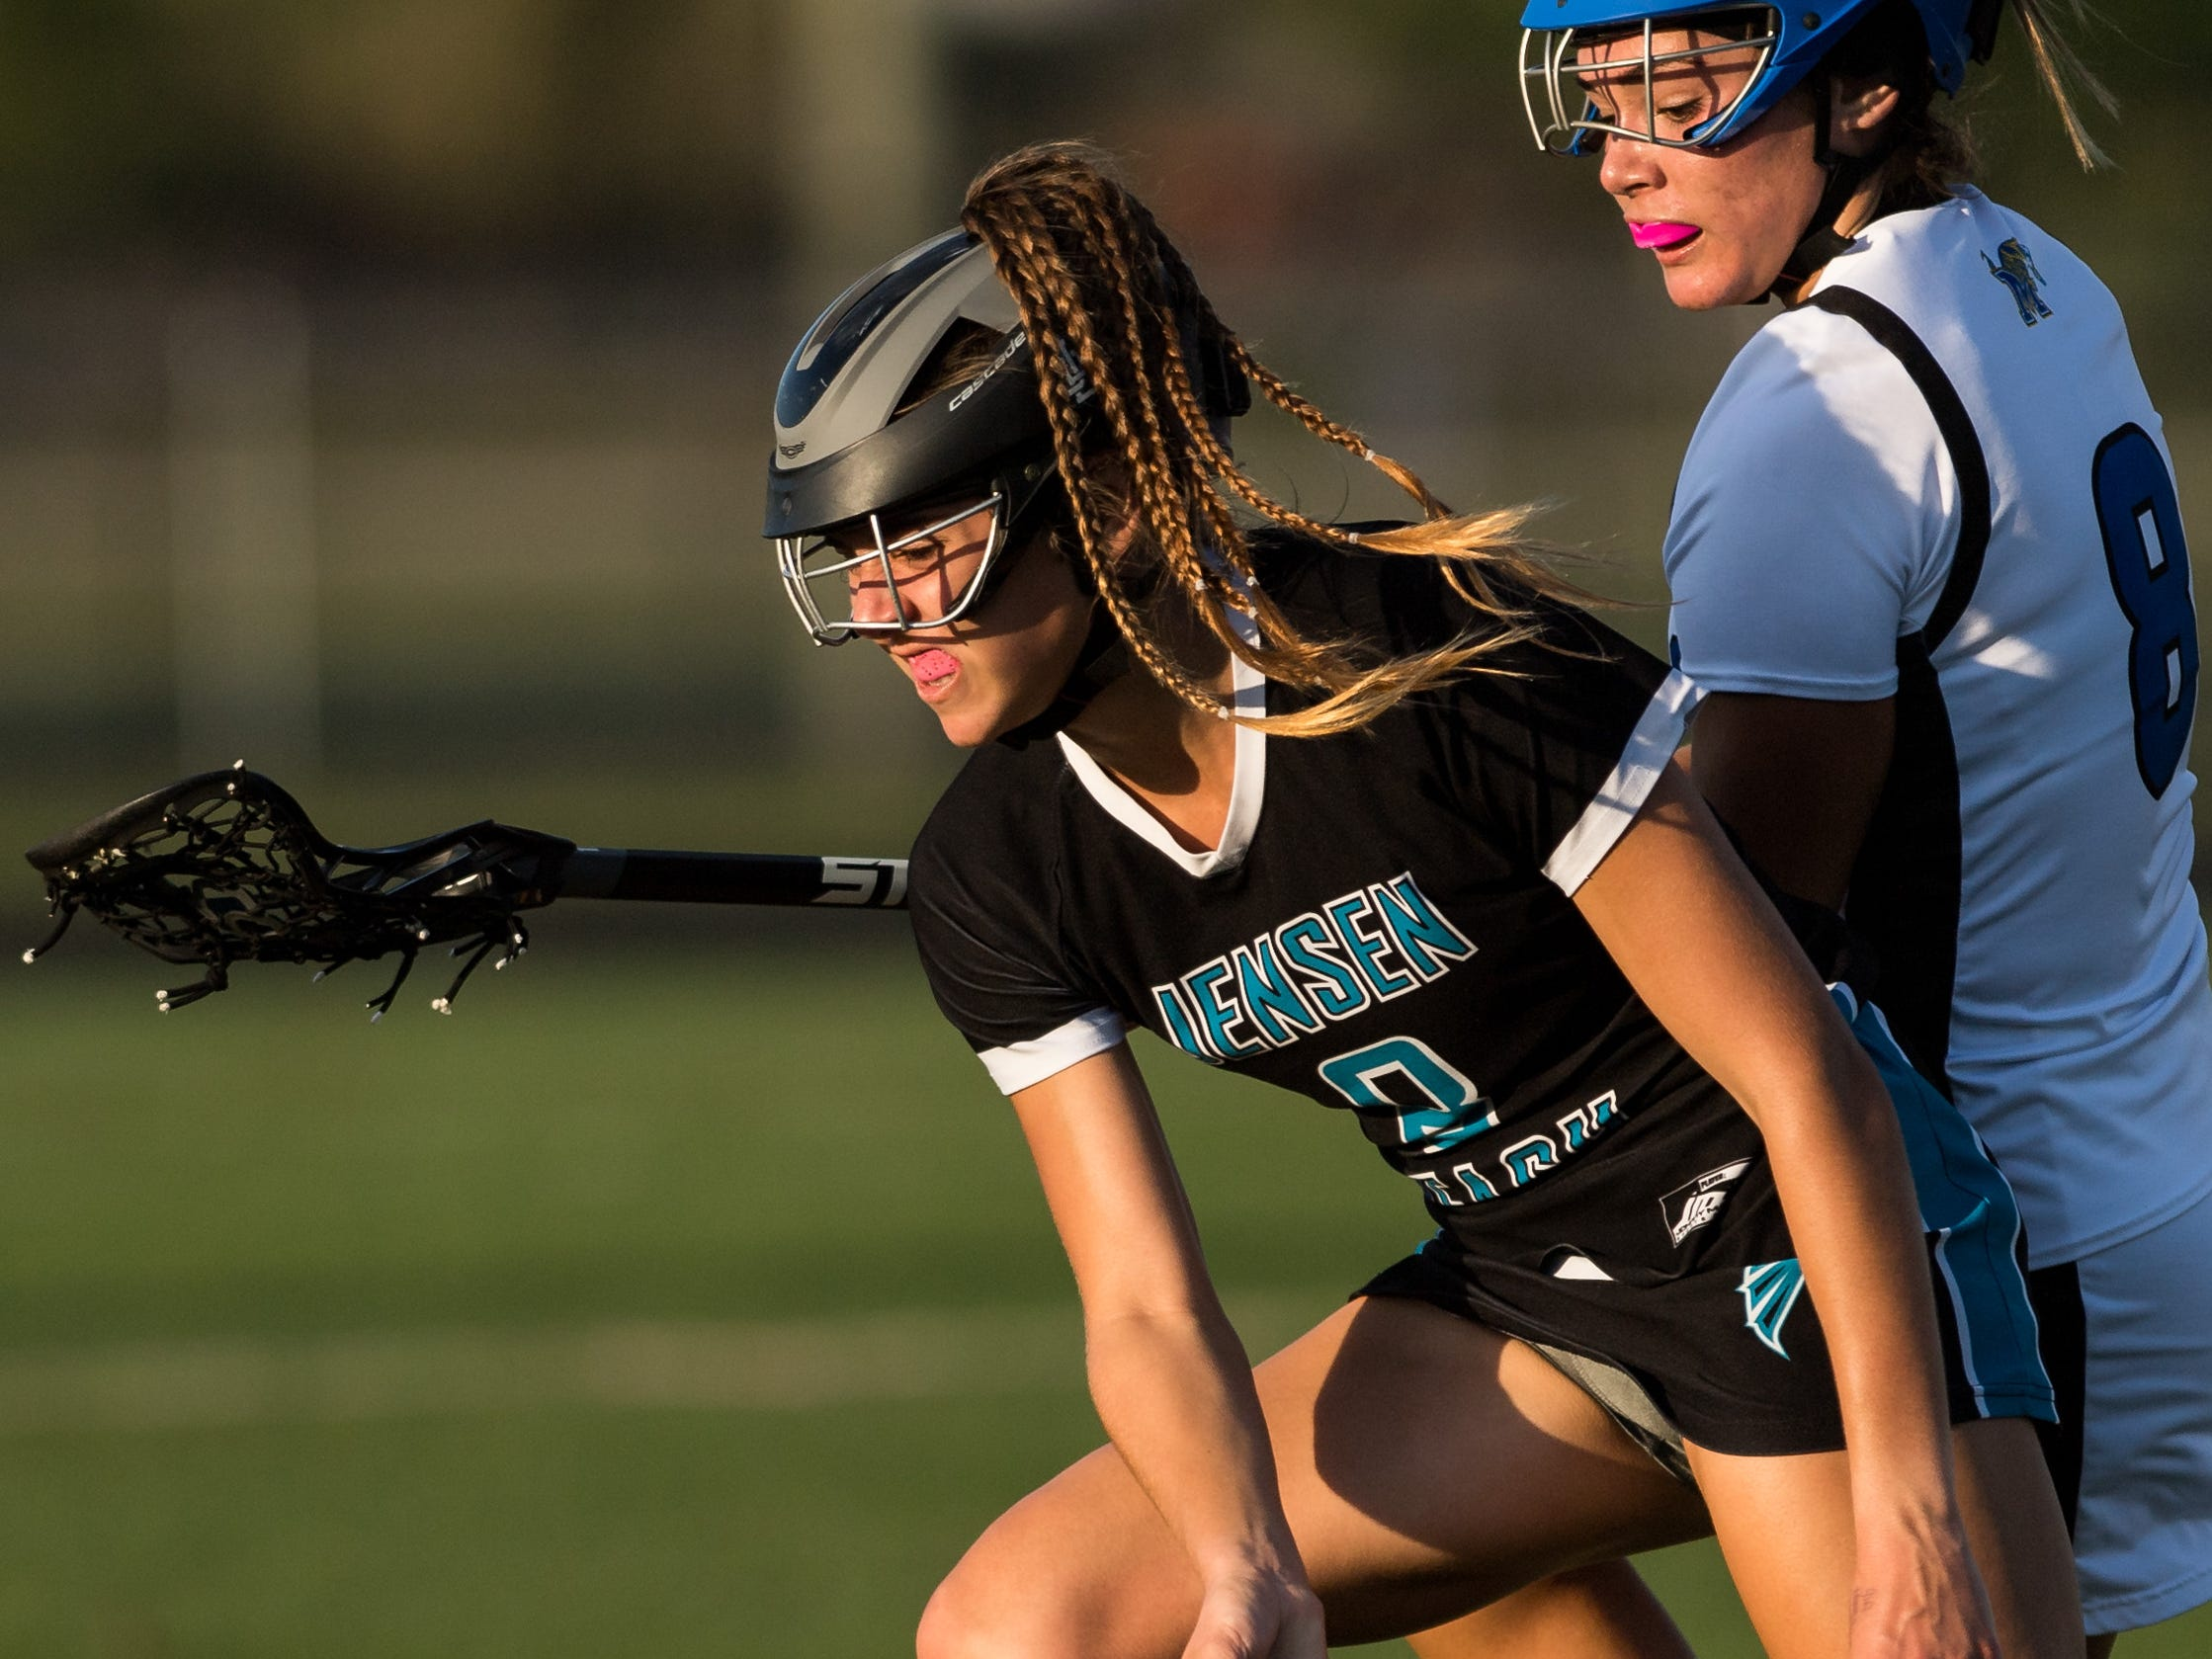 Jensen Beach's Faith Hamel (left) picks up a wild ball as Martin County's Kayla Dusharm applies pressure during the first half of the high school girls lacrosse game Thursday, March 21, 2019, at Martin County High School in Stuart.